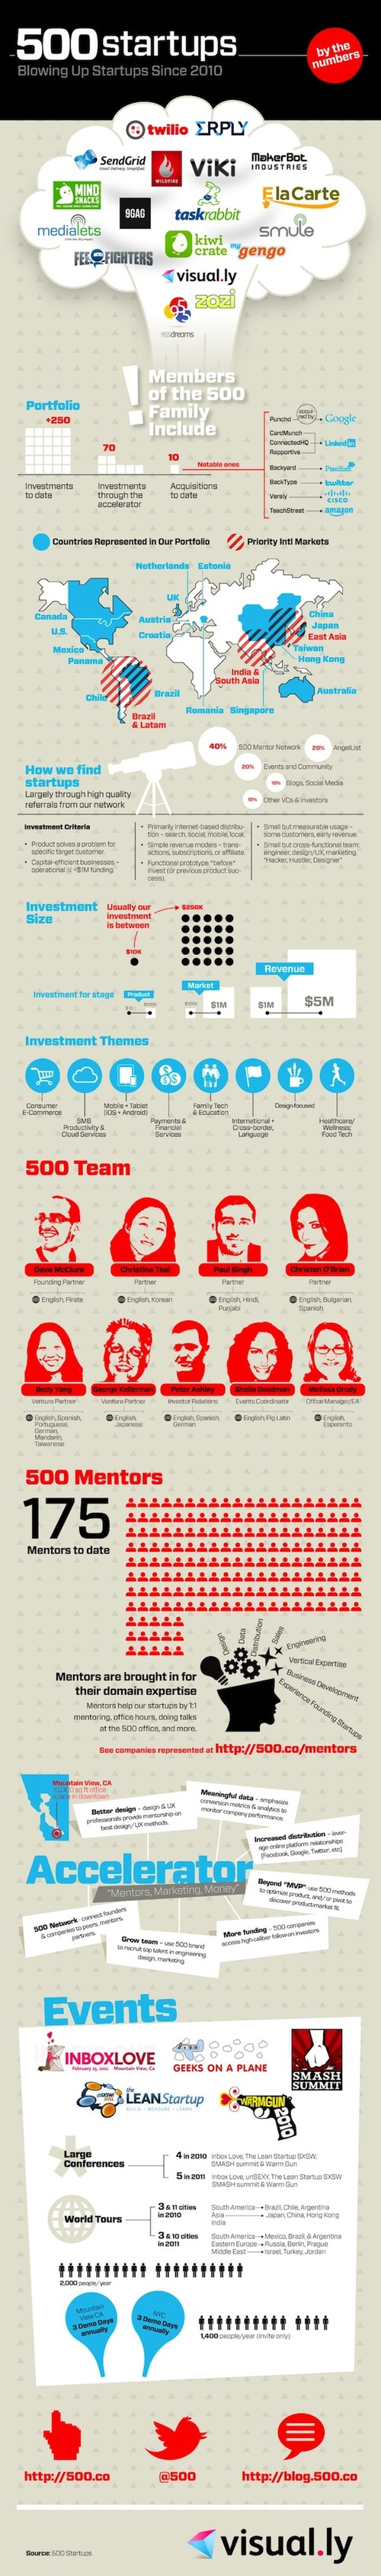 500 Startups_Infographic, marketingando